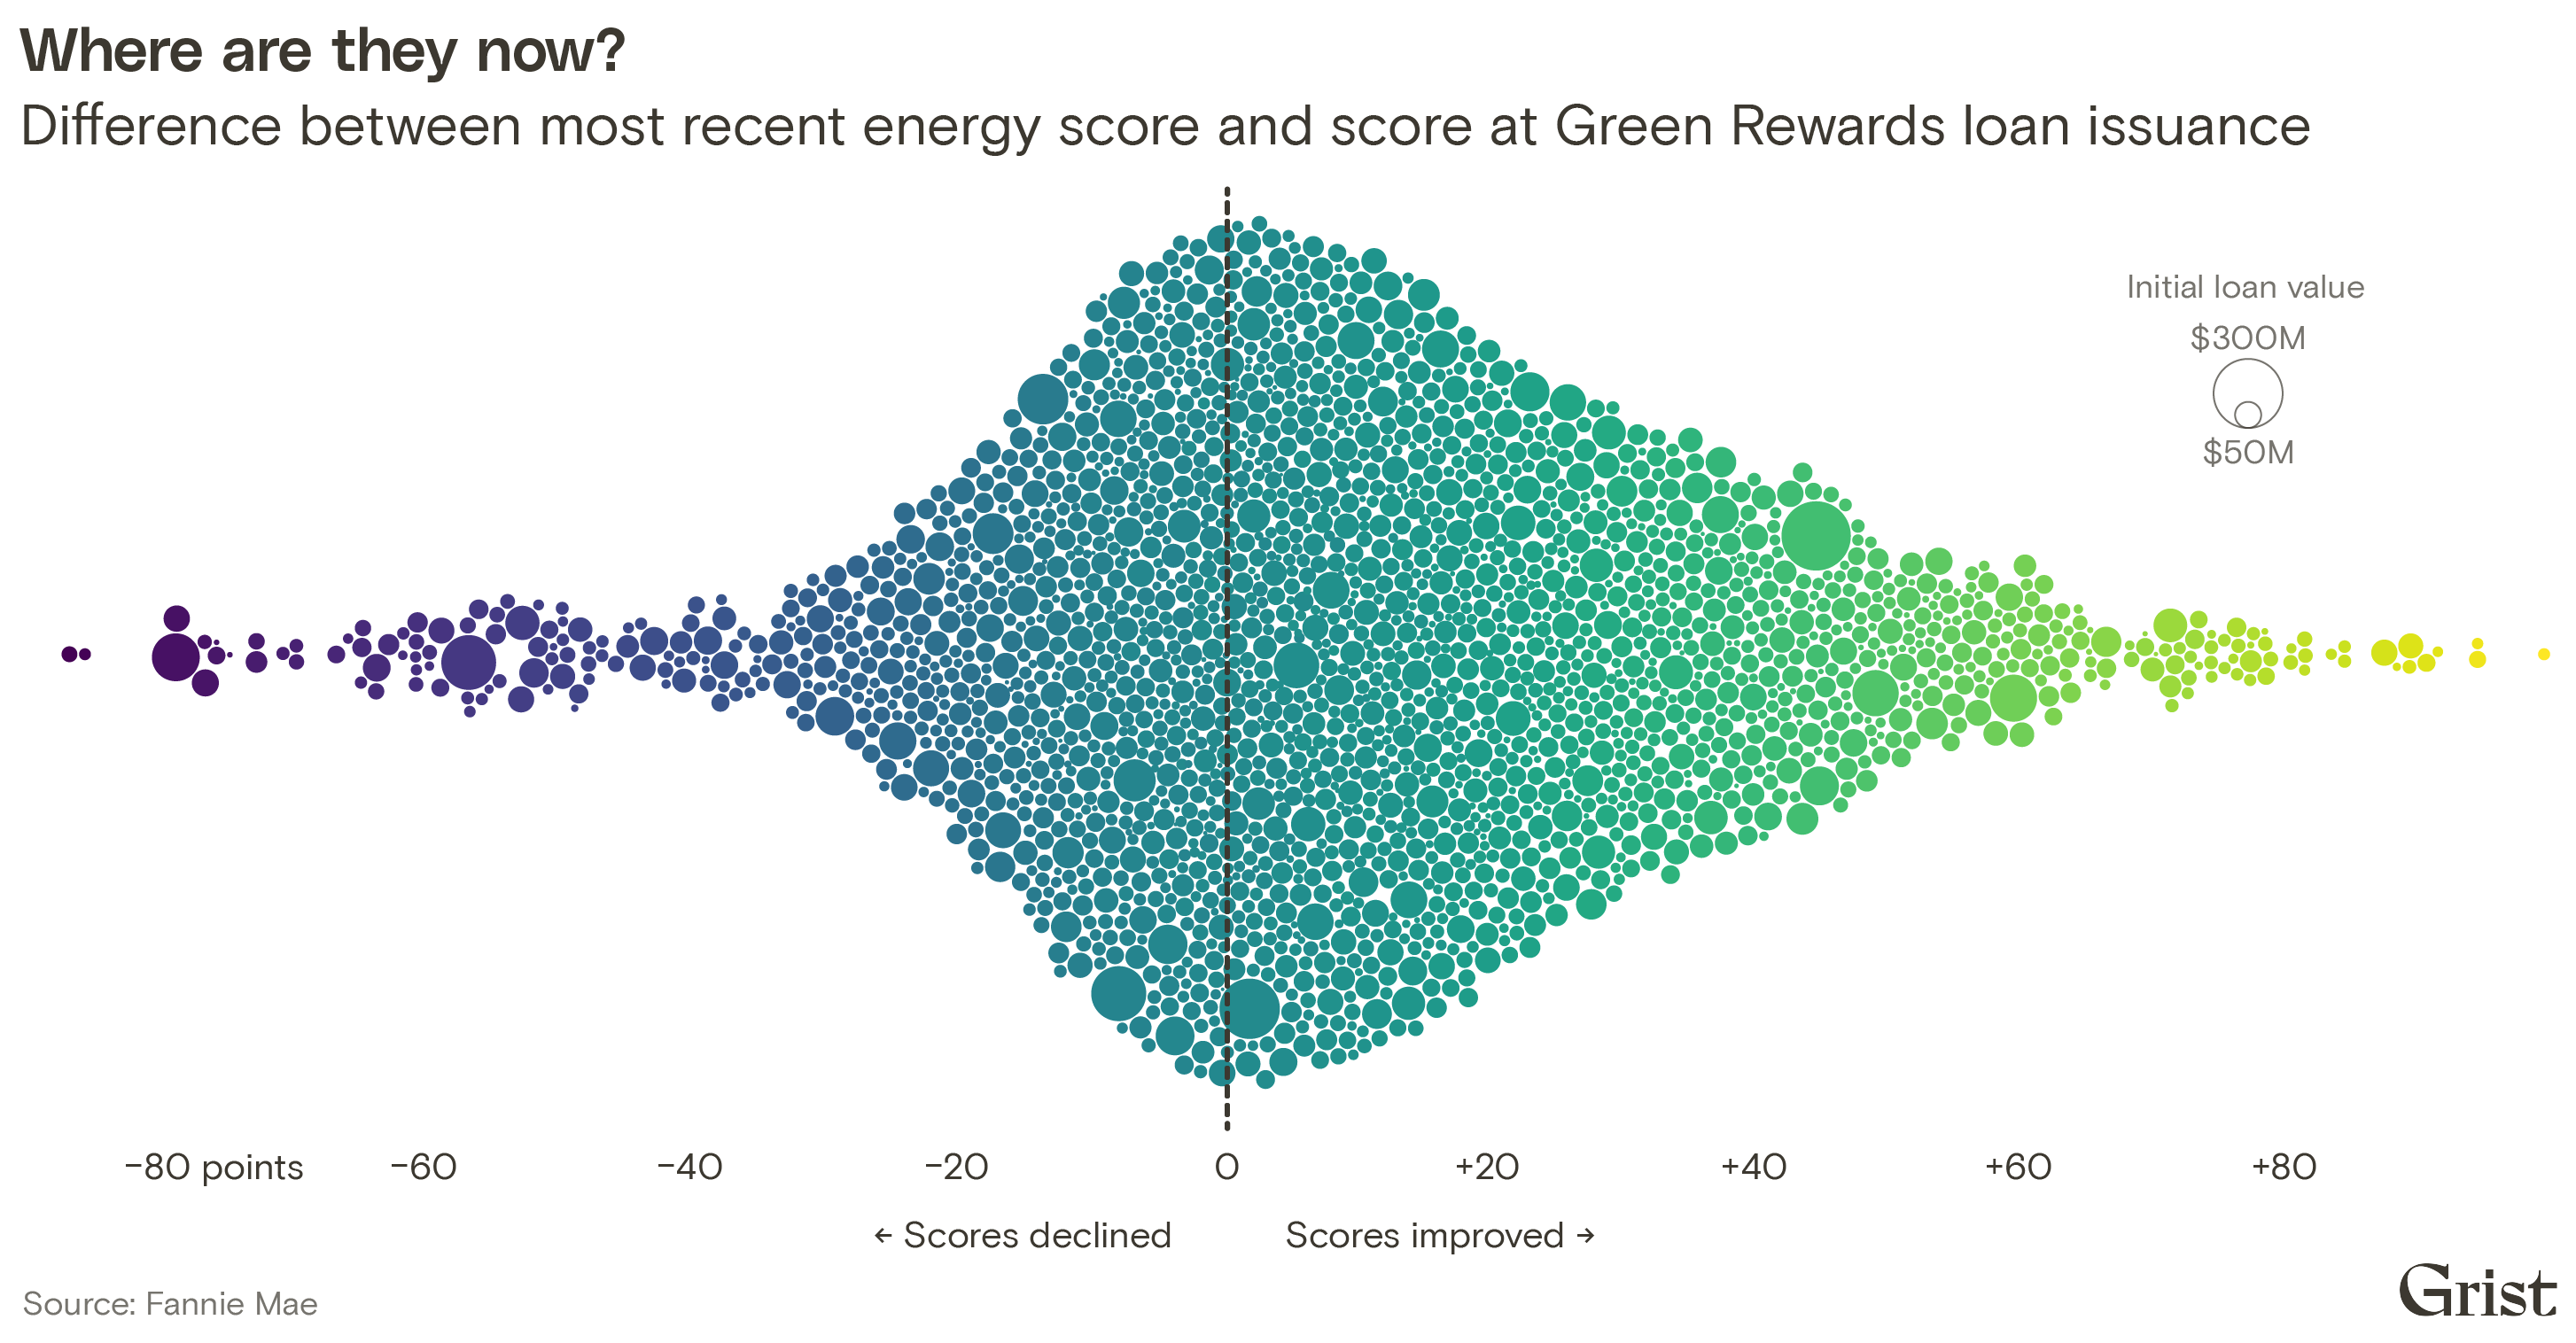 A bubble chart from Fannie Mae data showing properties' differences in energy scores between Green Rewards loan issuance and the most recent data year. While most properties improved their energy performance, many stagnated or declined.